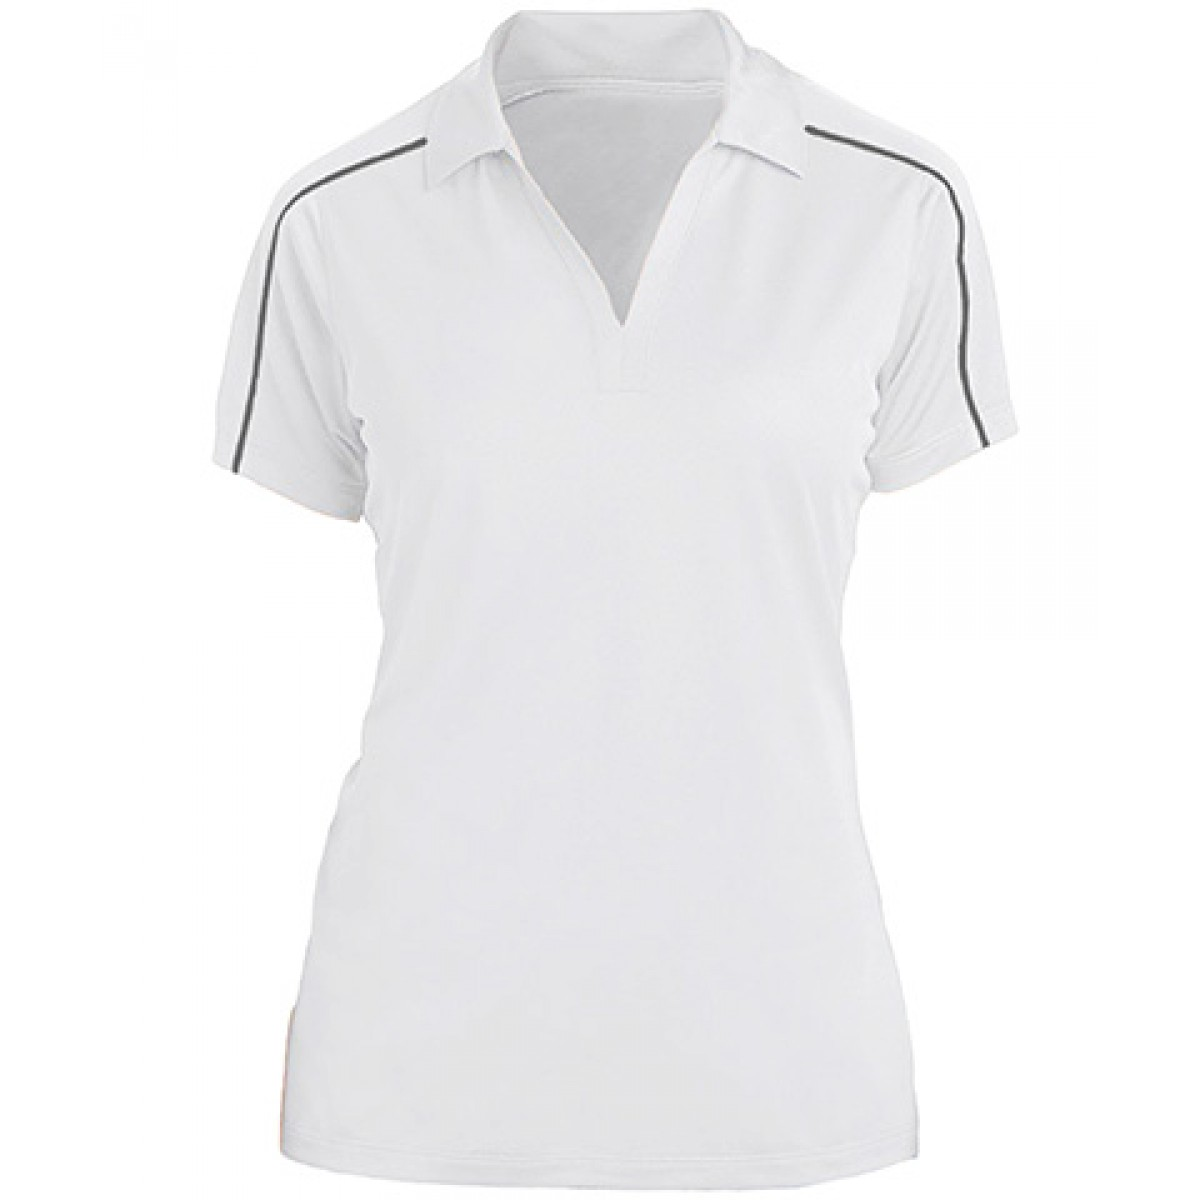 Sport-Tek Womens Piped Short Sleeve Polo -White-XS